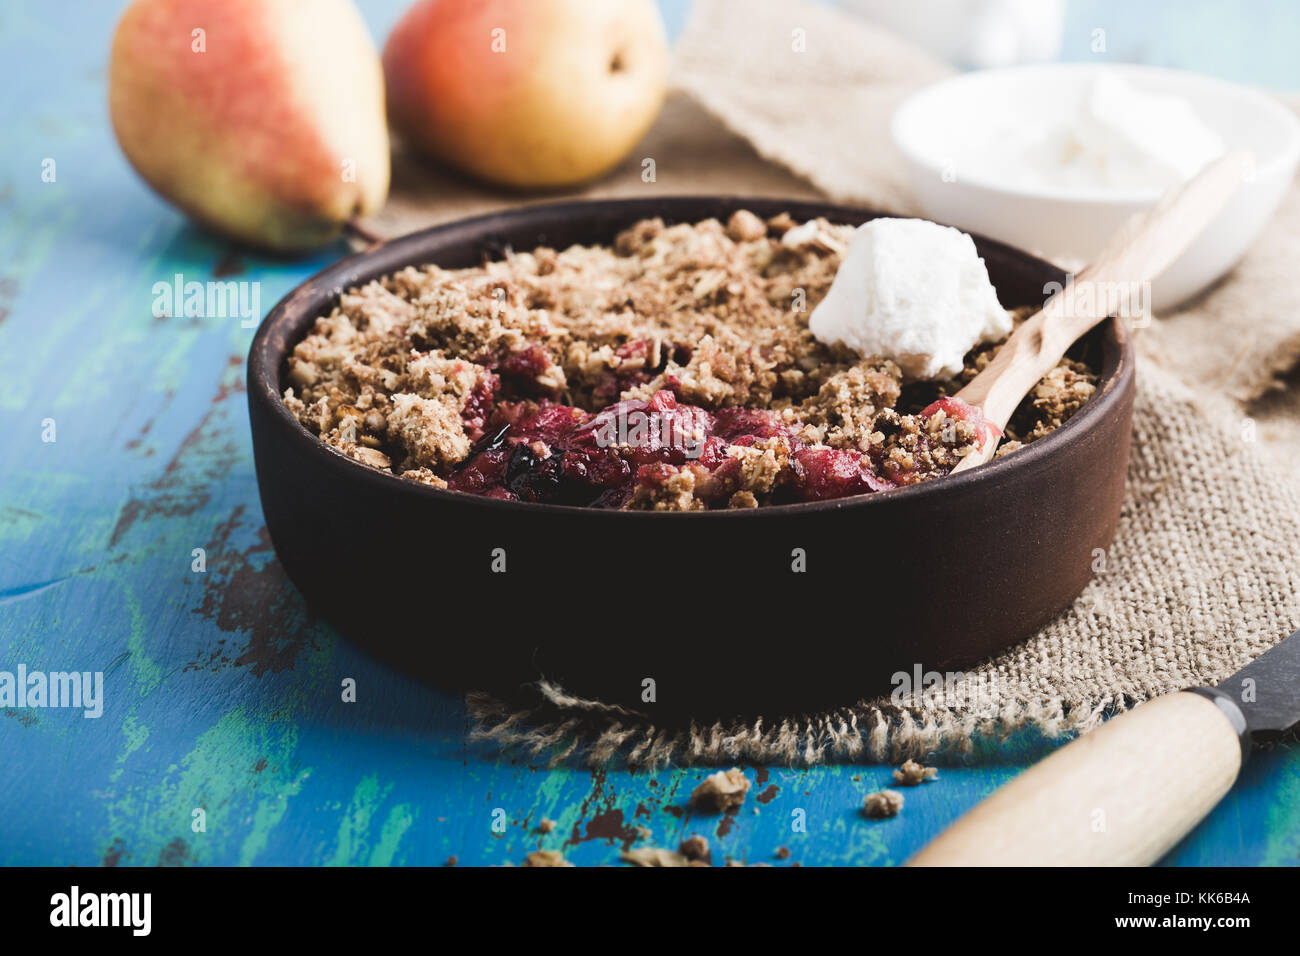 Pear and berry crumbles served with cream in rustic ceramic bowl - Stock Image